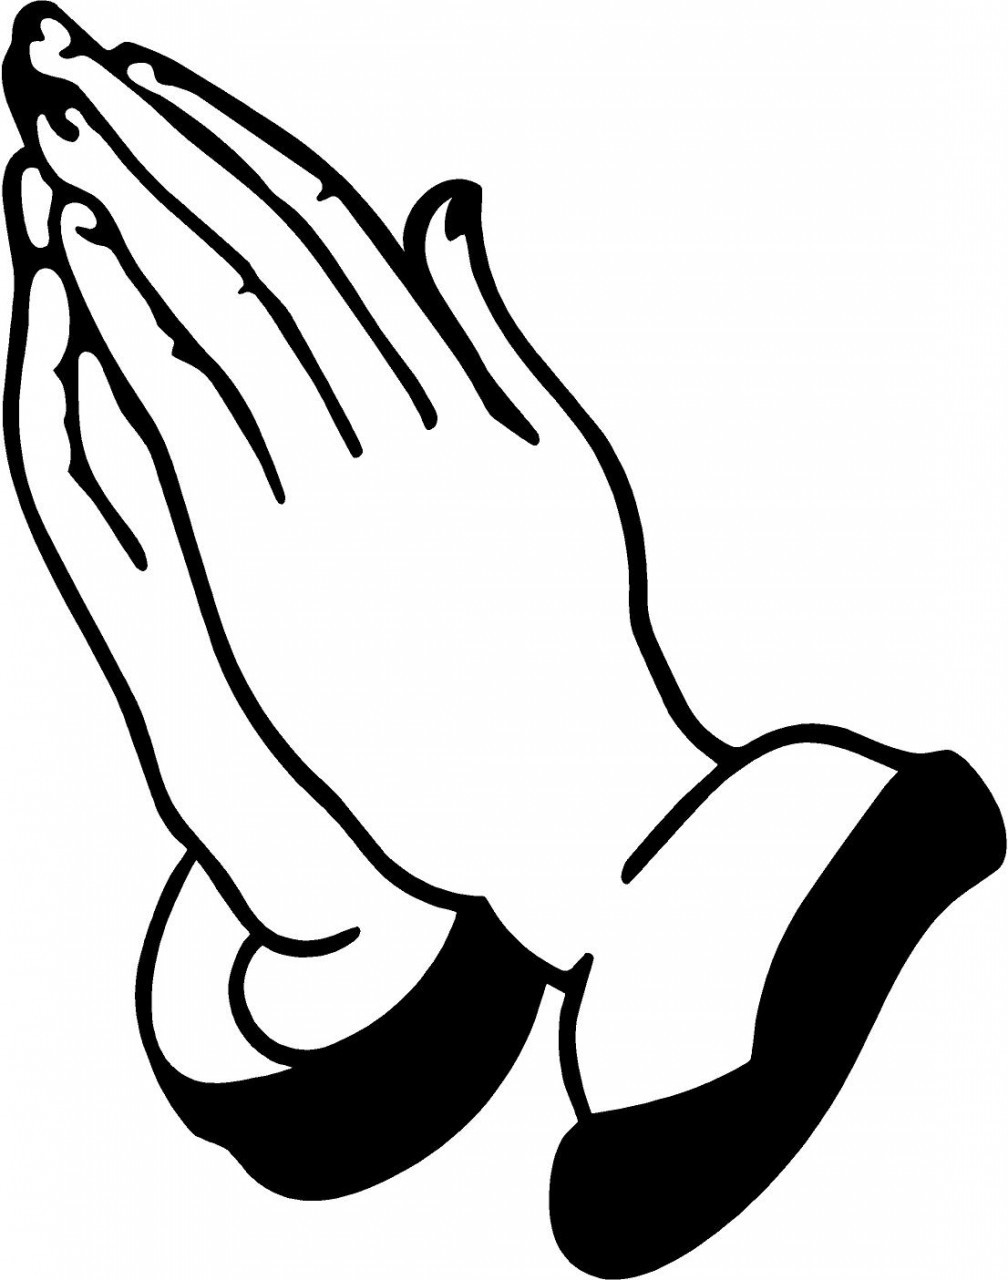 Clip Art Of Praying Hands - Cliparts.co